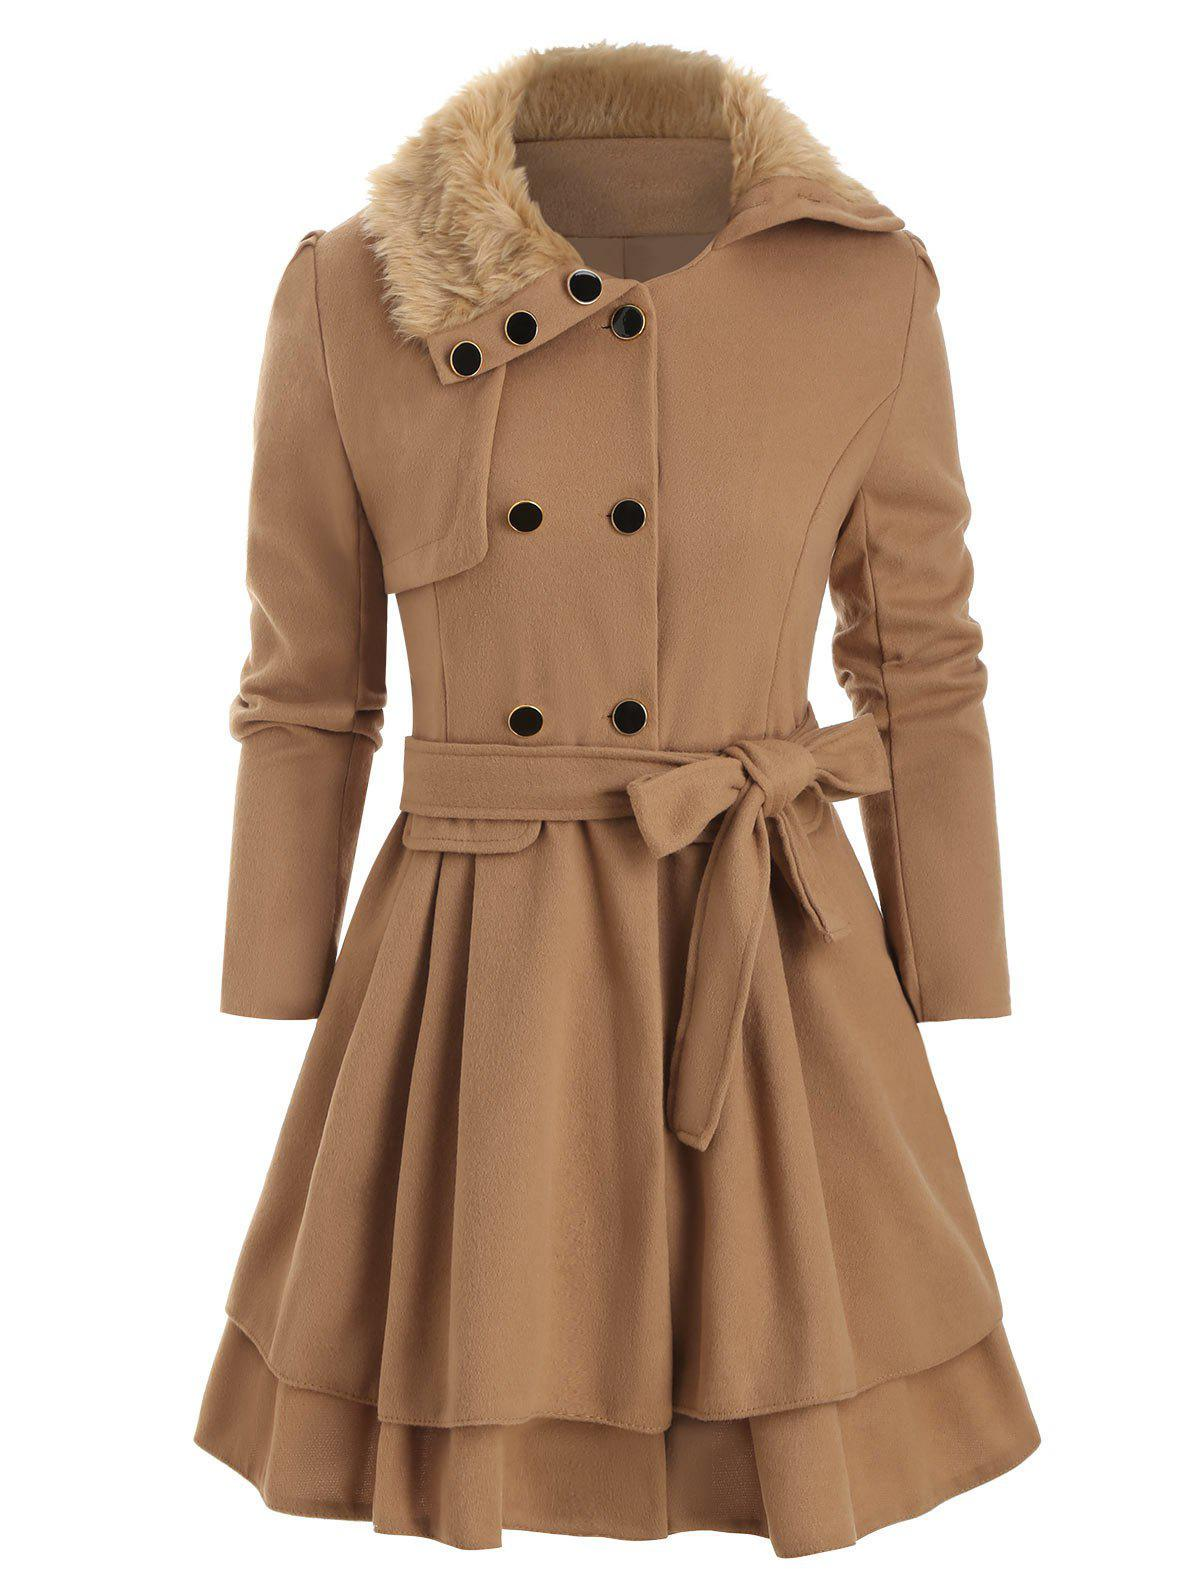 Faux Fur Collar Double Breasted Wool Blend Coat - CAMEL BROWN L